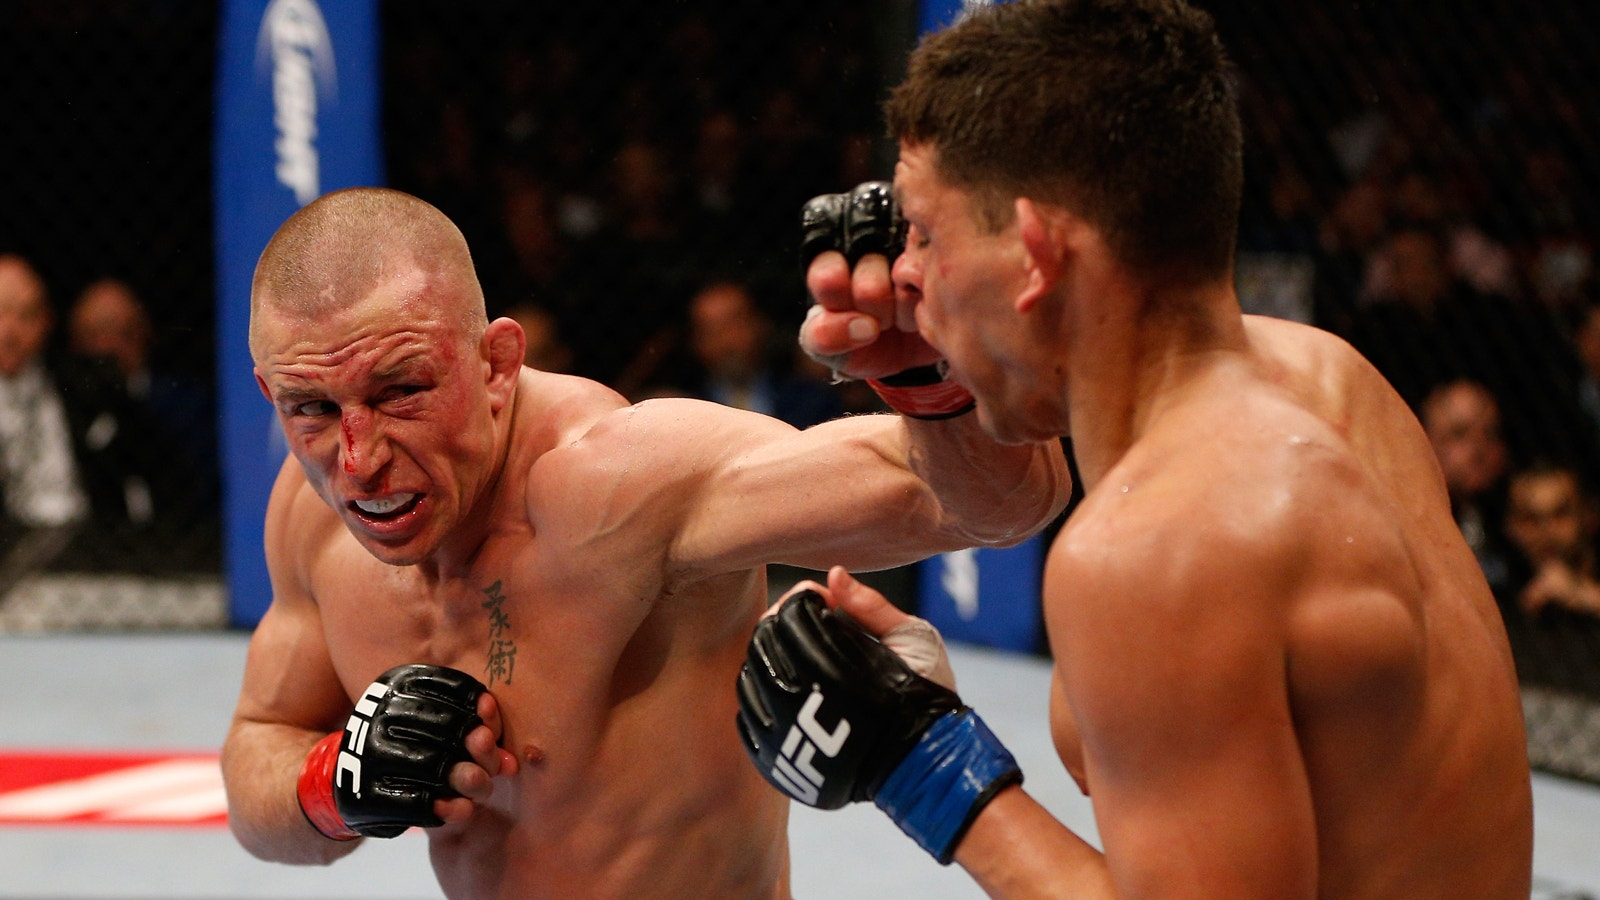 Georges St-Pierre fires back at Nick Diaz, open to rematch in return